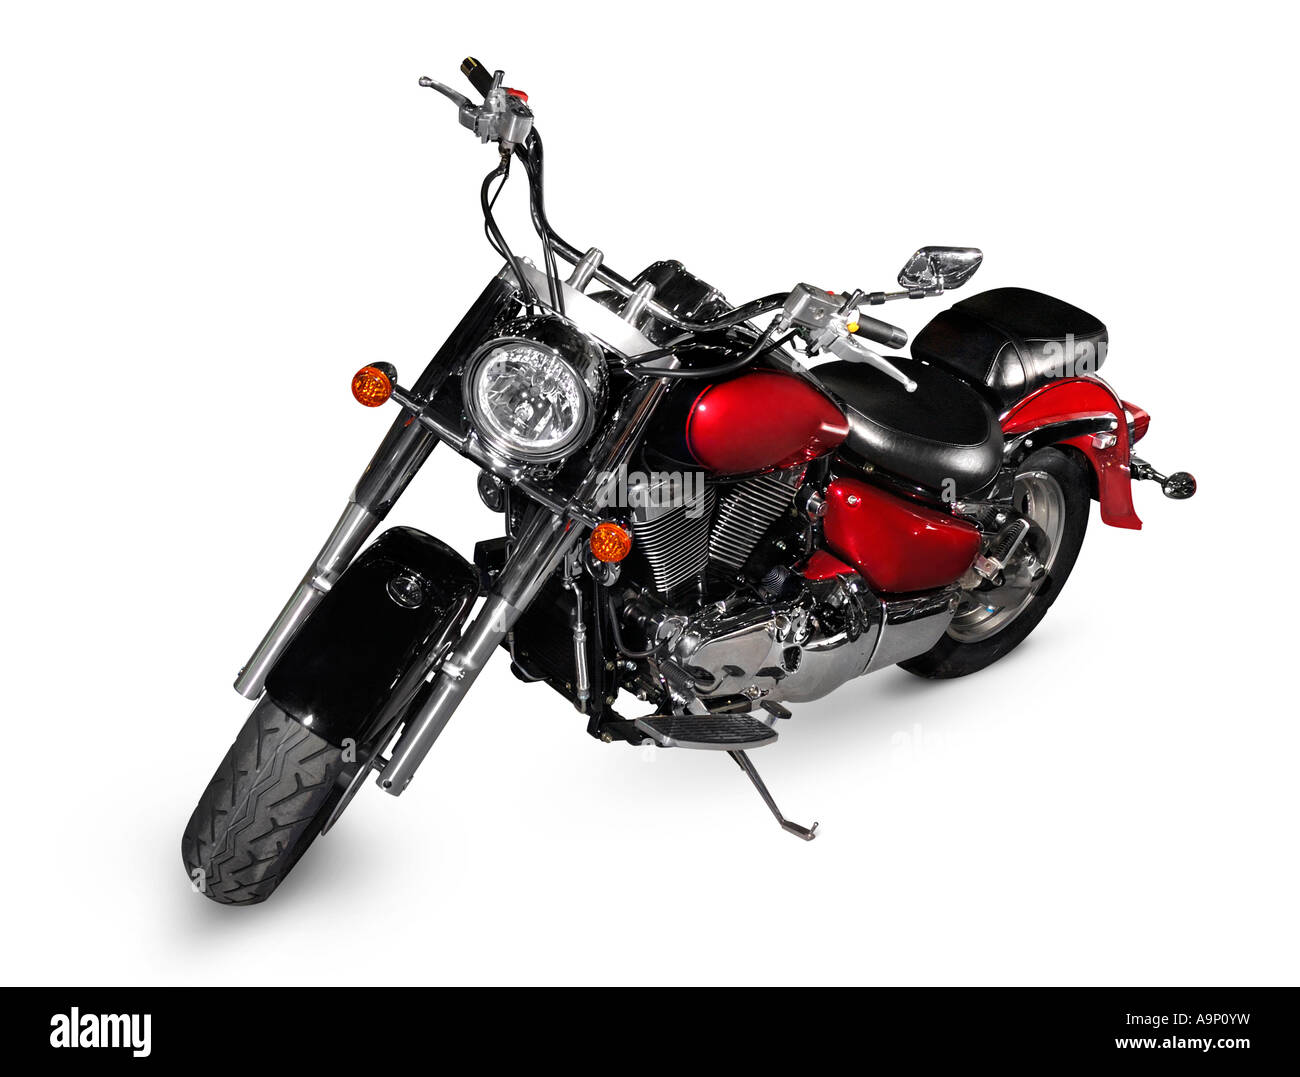 Red motorcycle - Stock Image